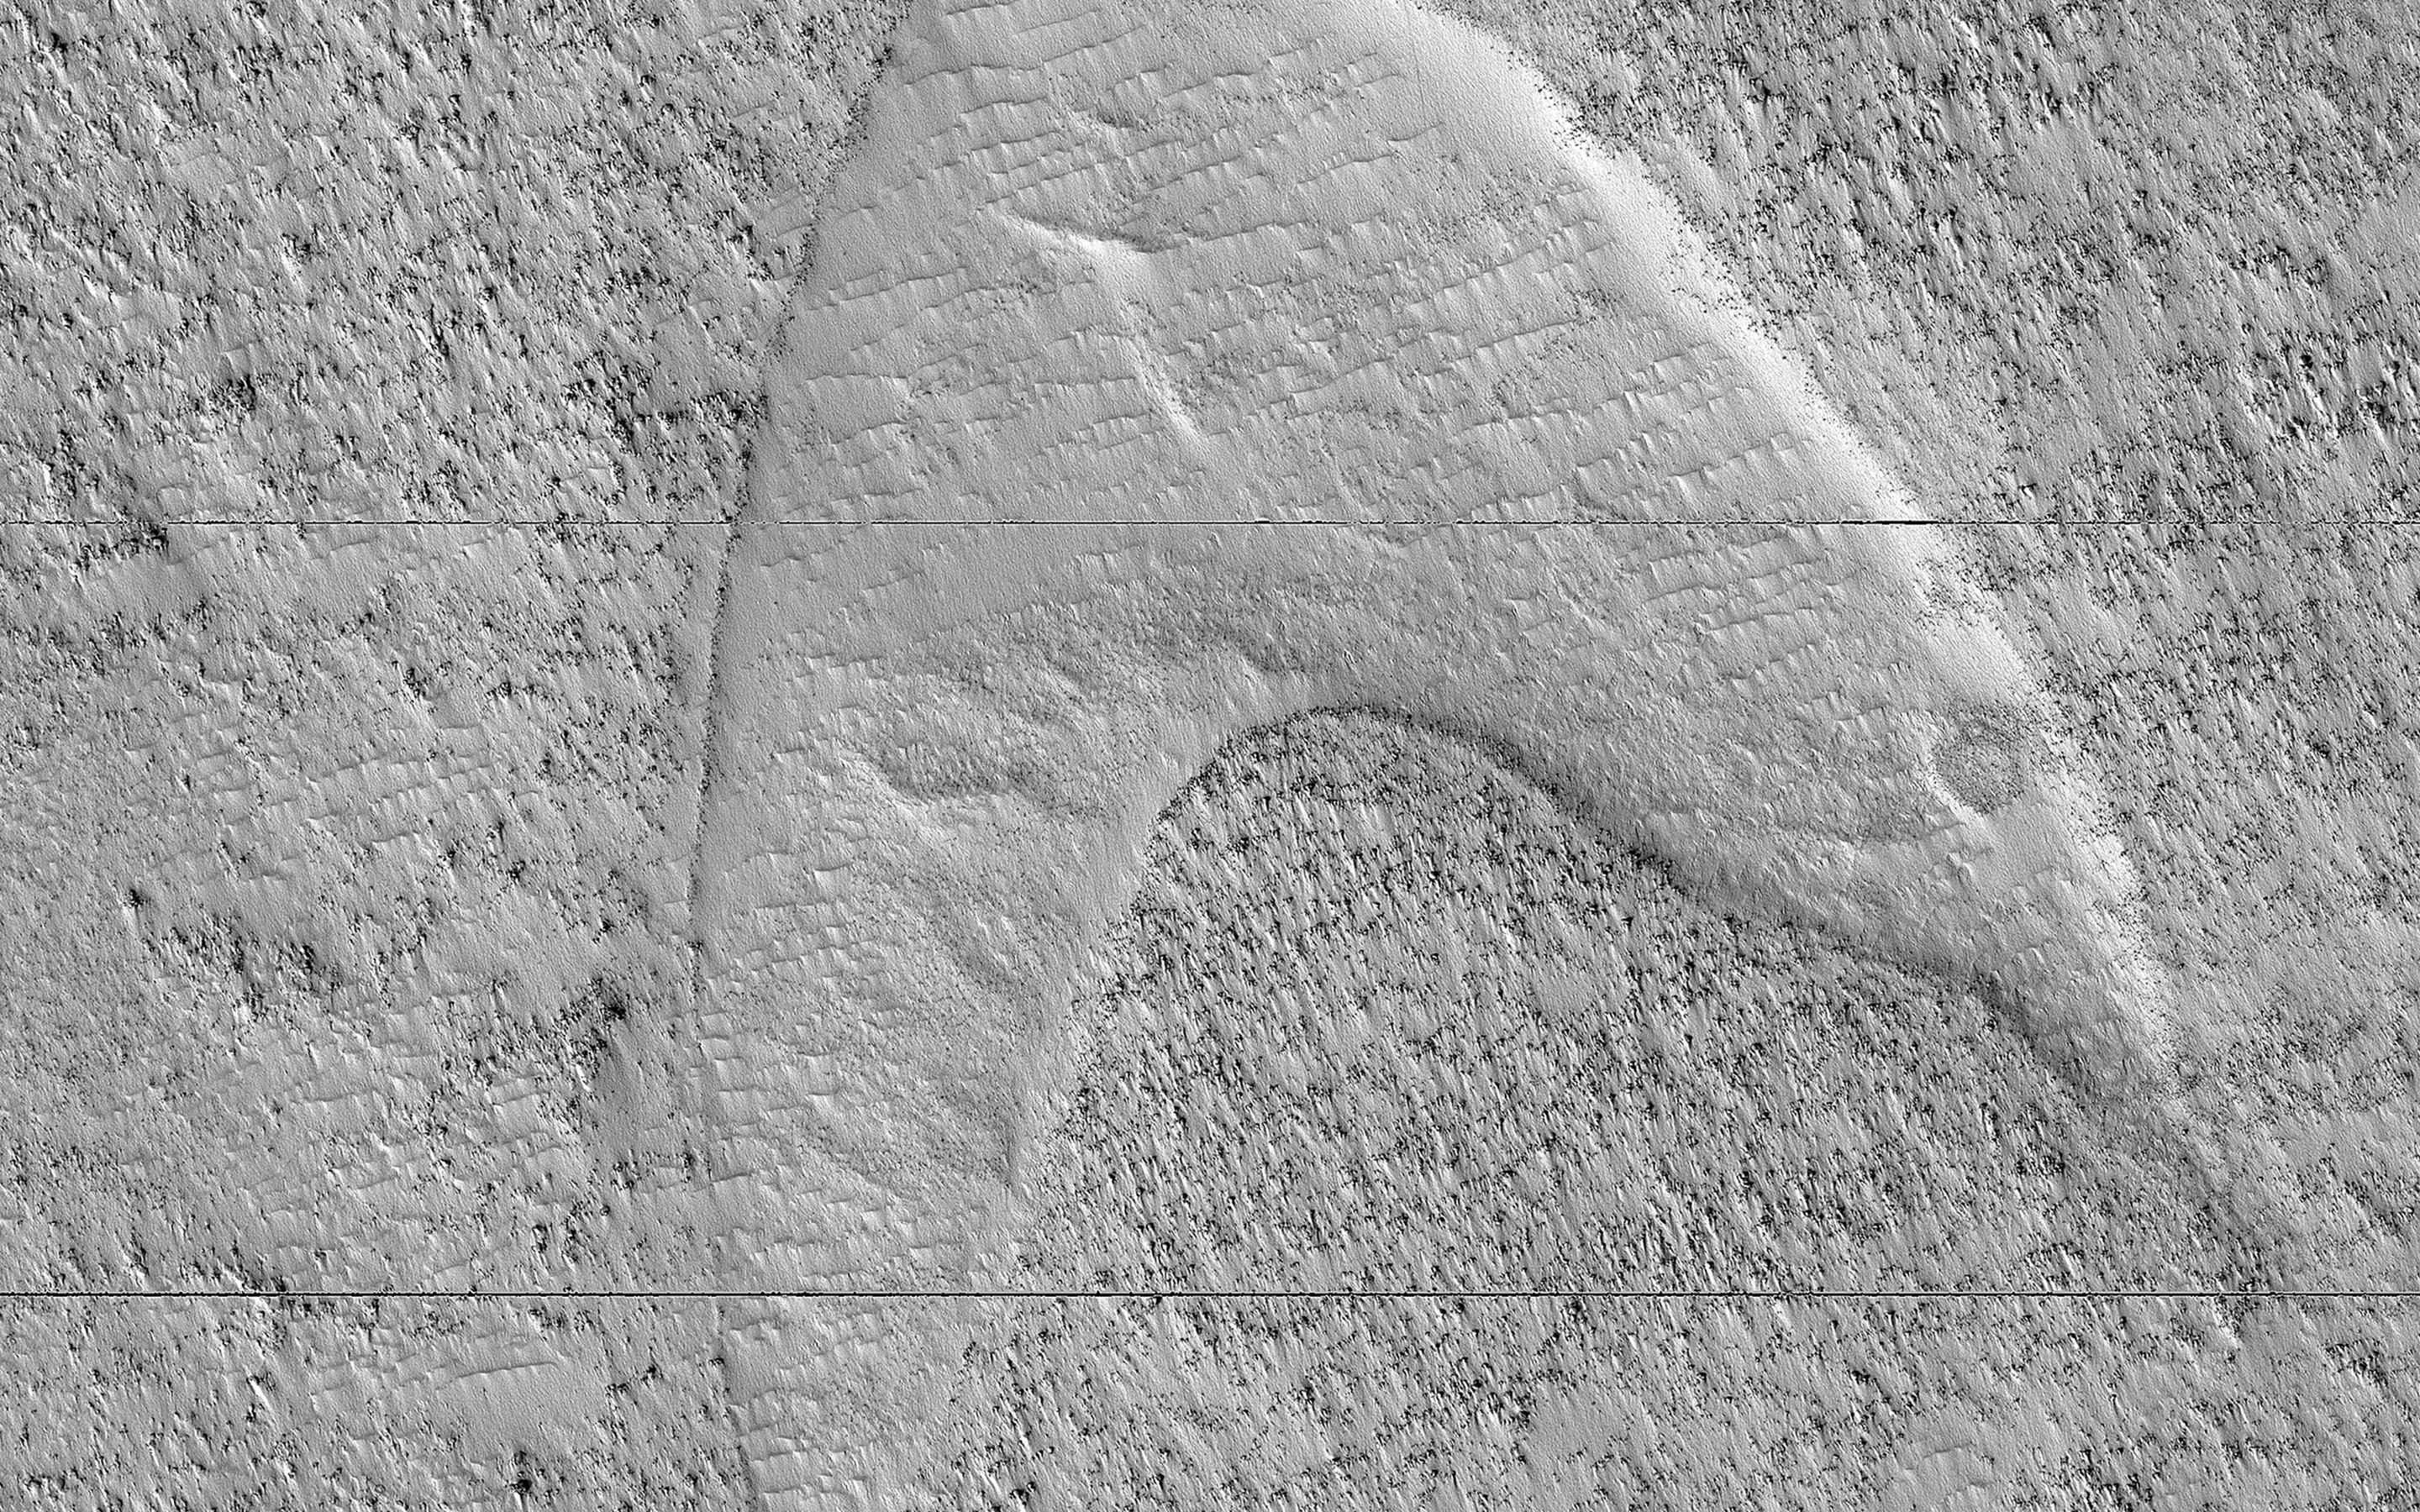 Star Trek Symbol On Mars